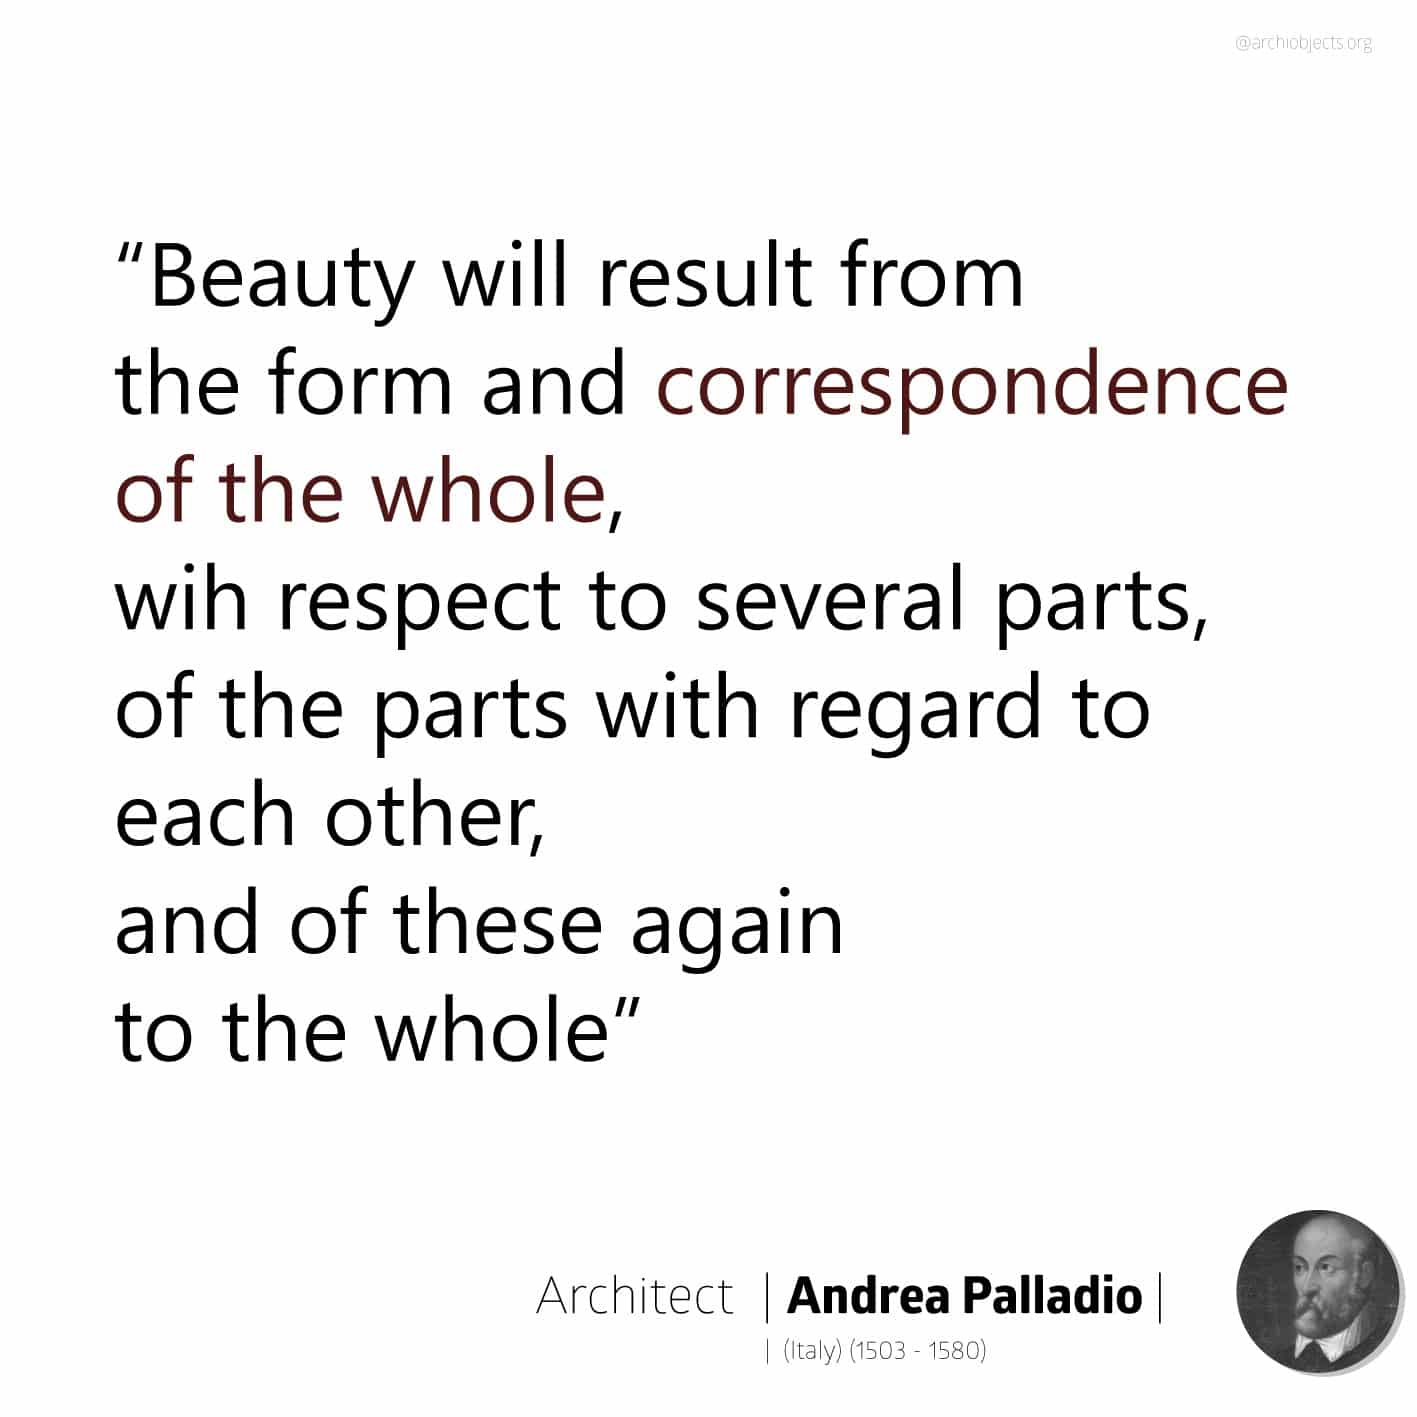 andrea palladio quote Architectural Quotes - Worth spreading Architects' voice